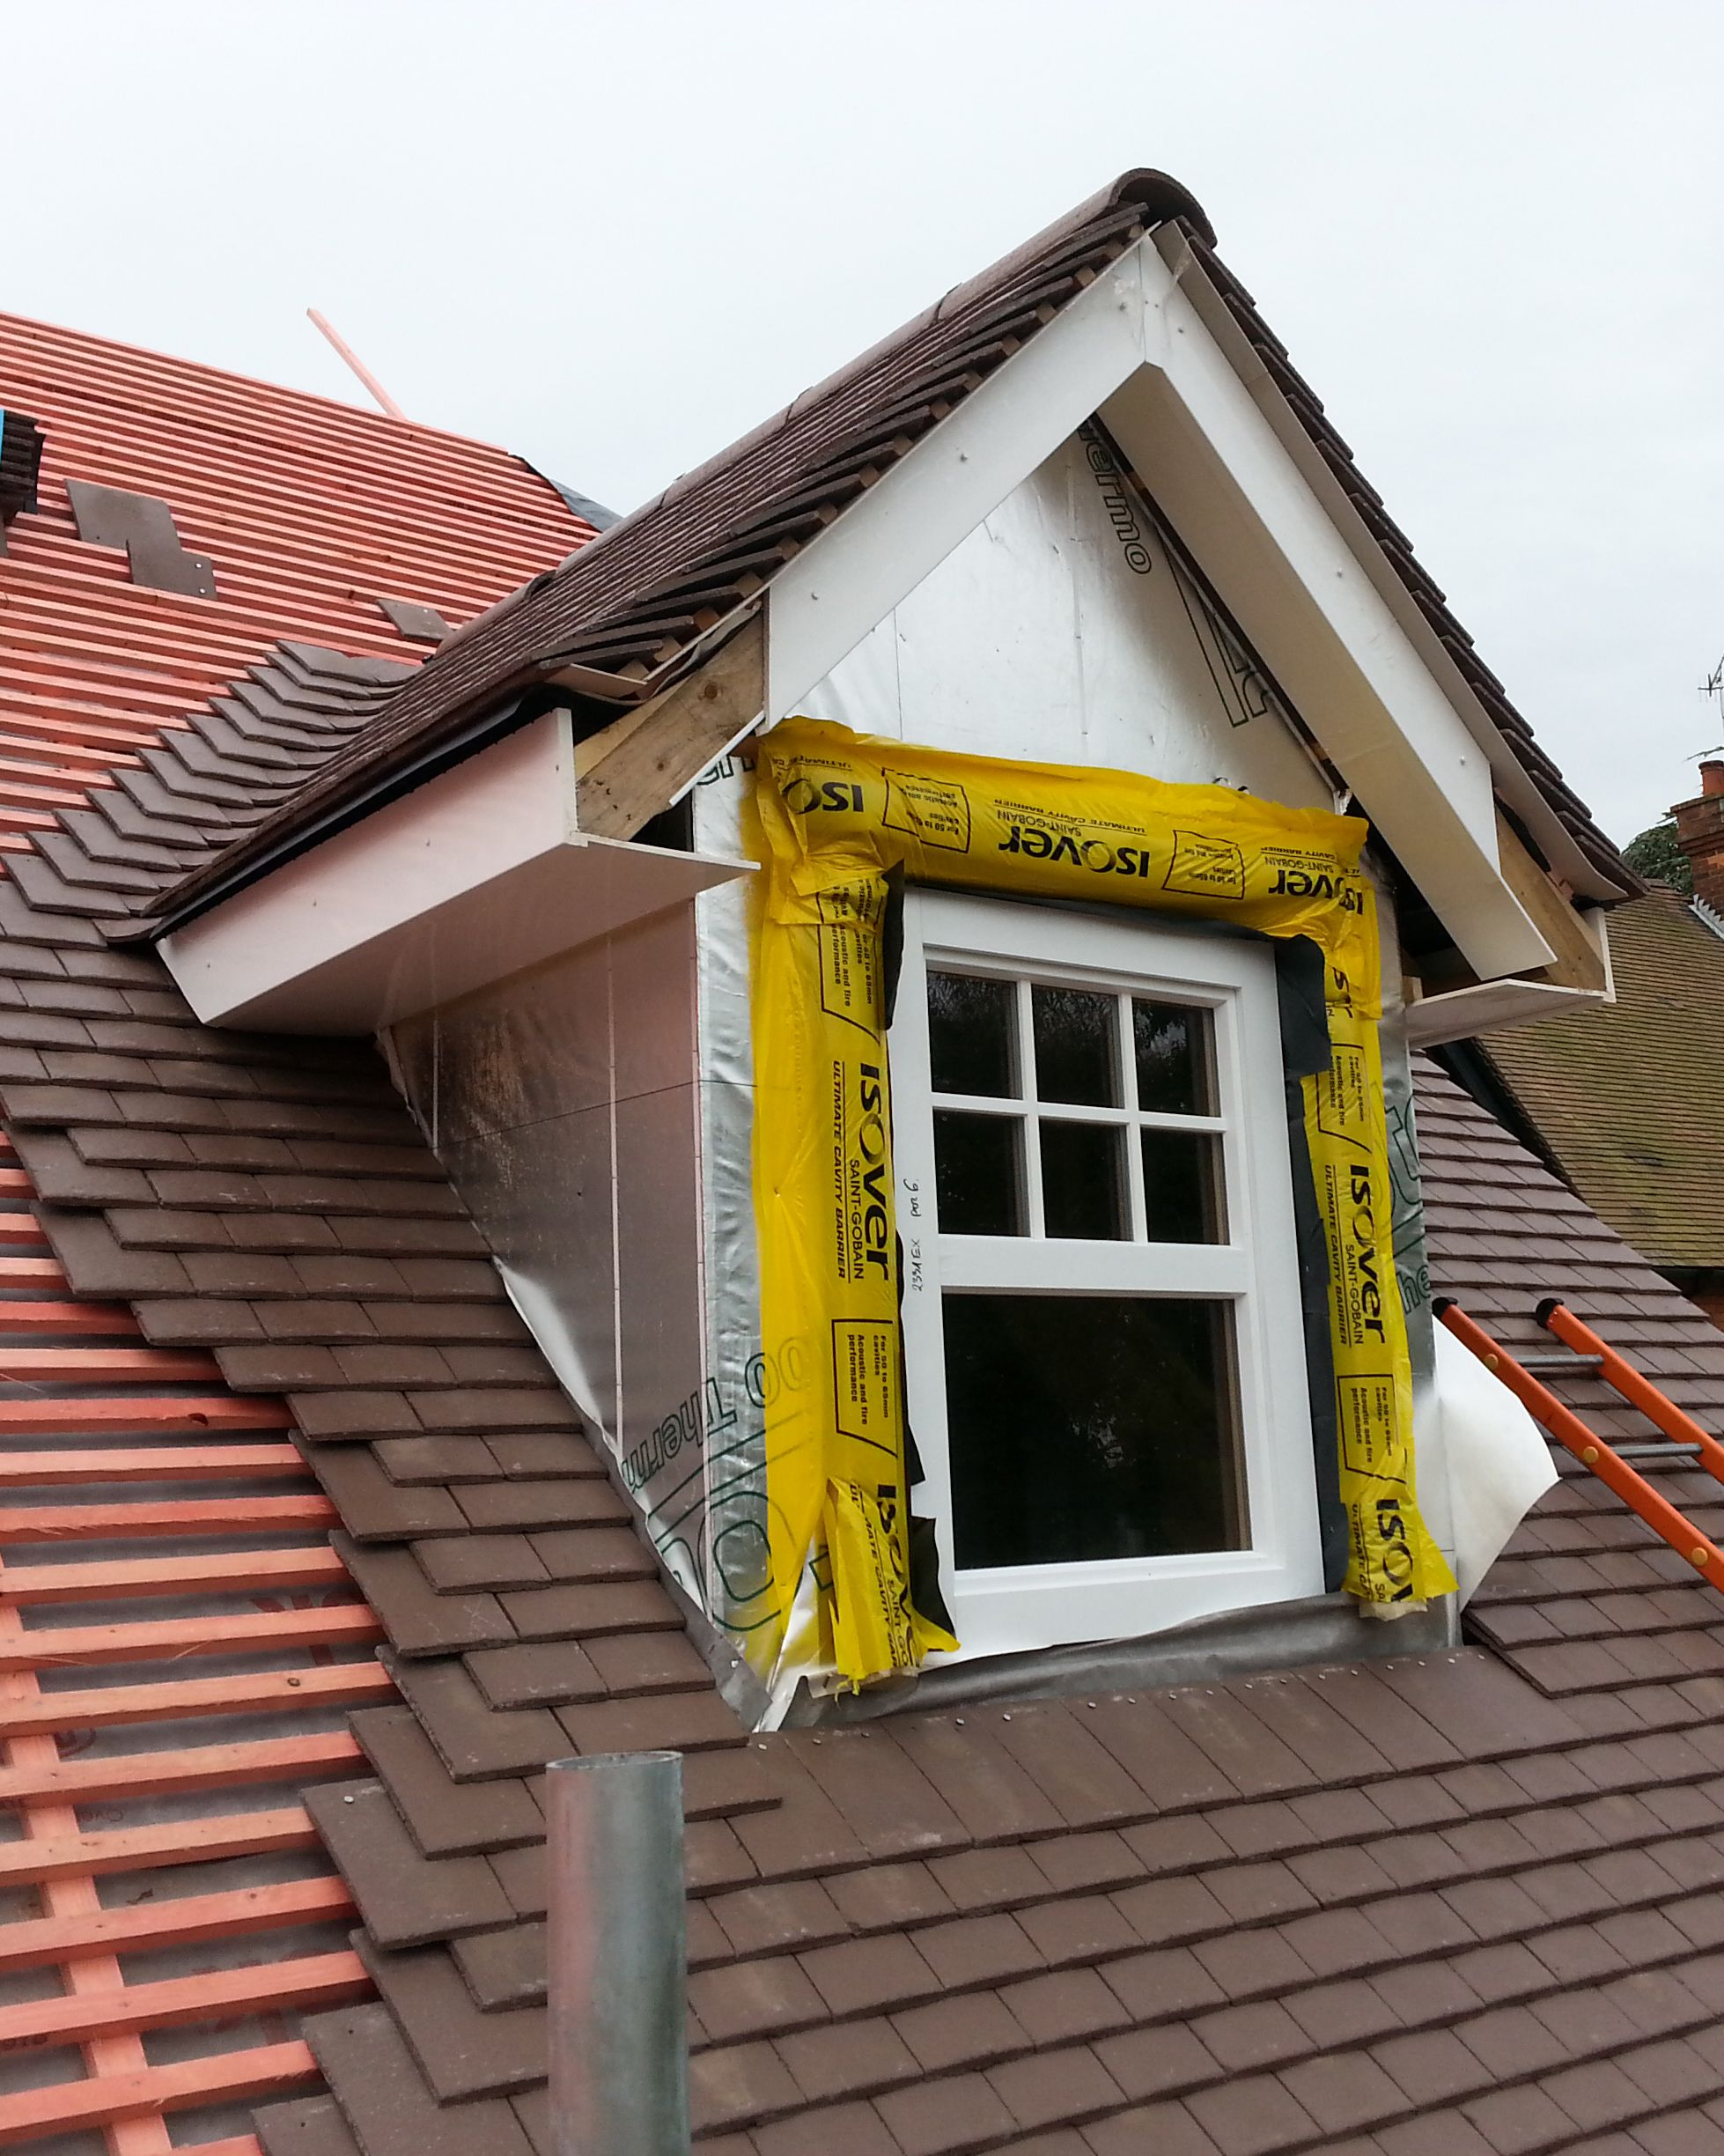 Dormer window under construction in timber frame yellow for Construction windows